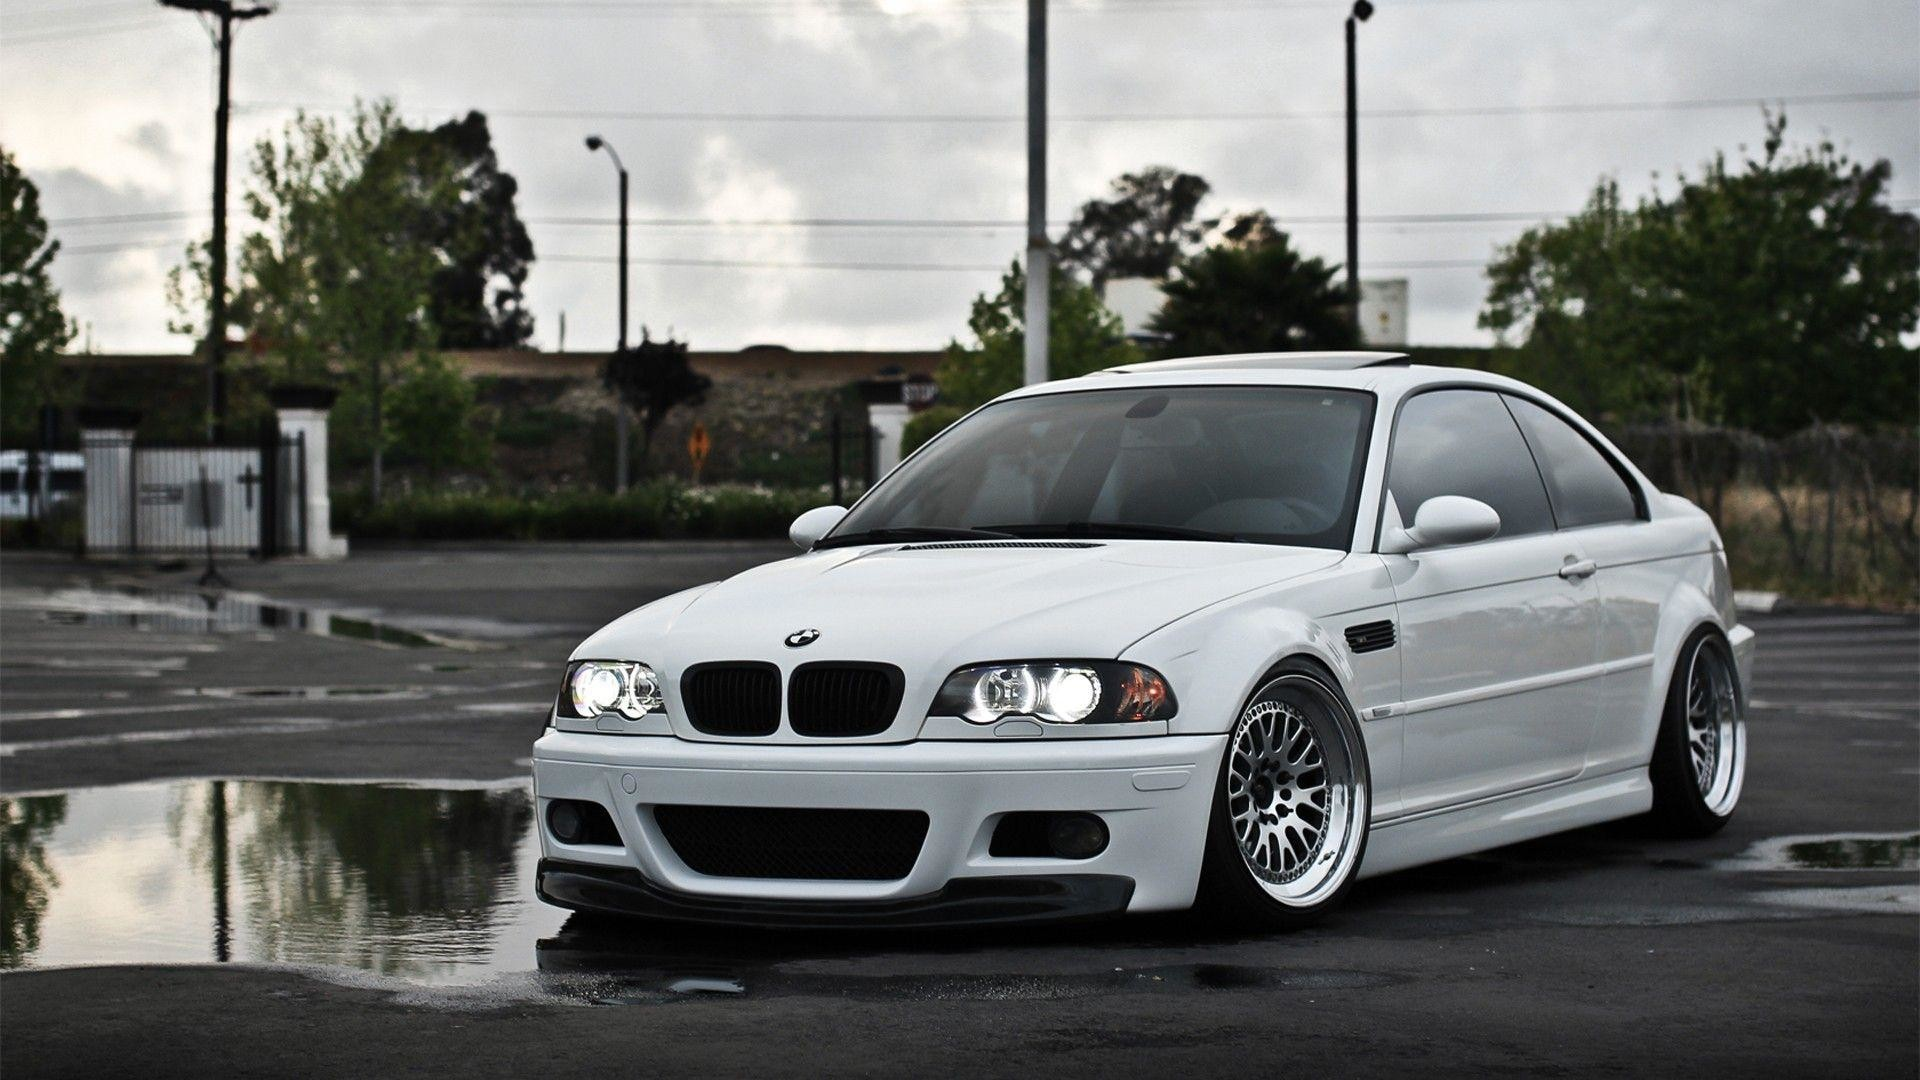 1920x1080 Pix For > Bmw E46 M3 Wallpaper